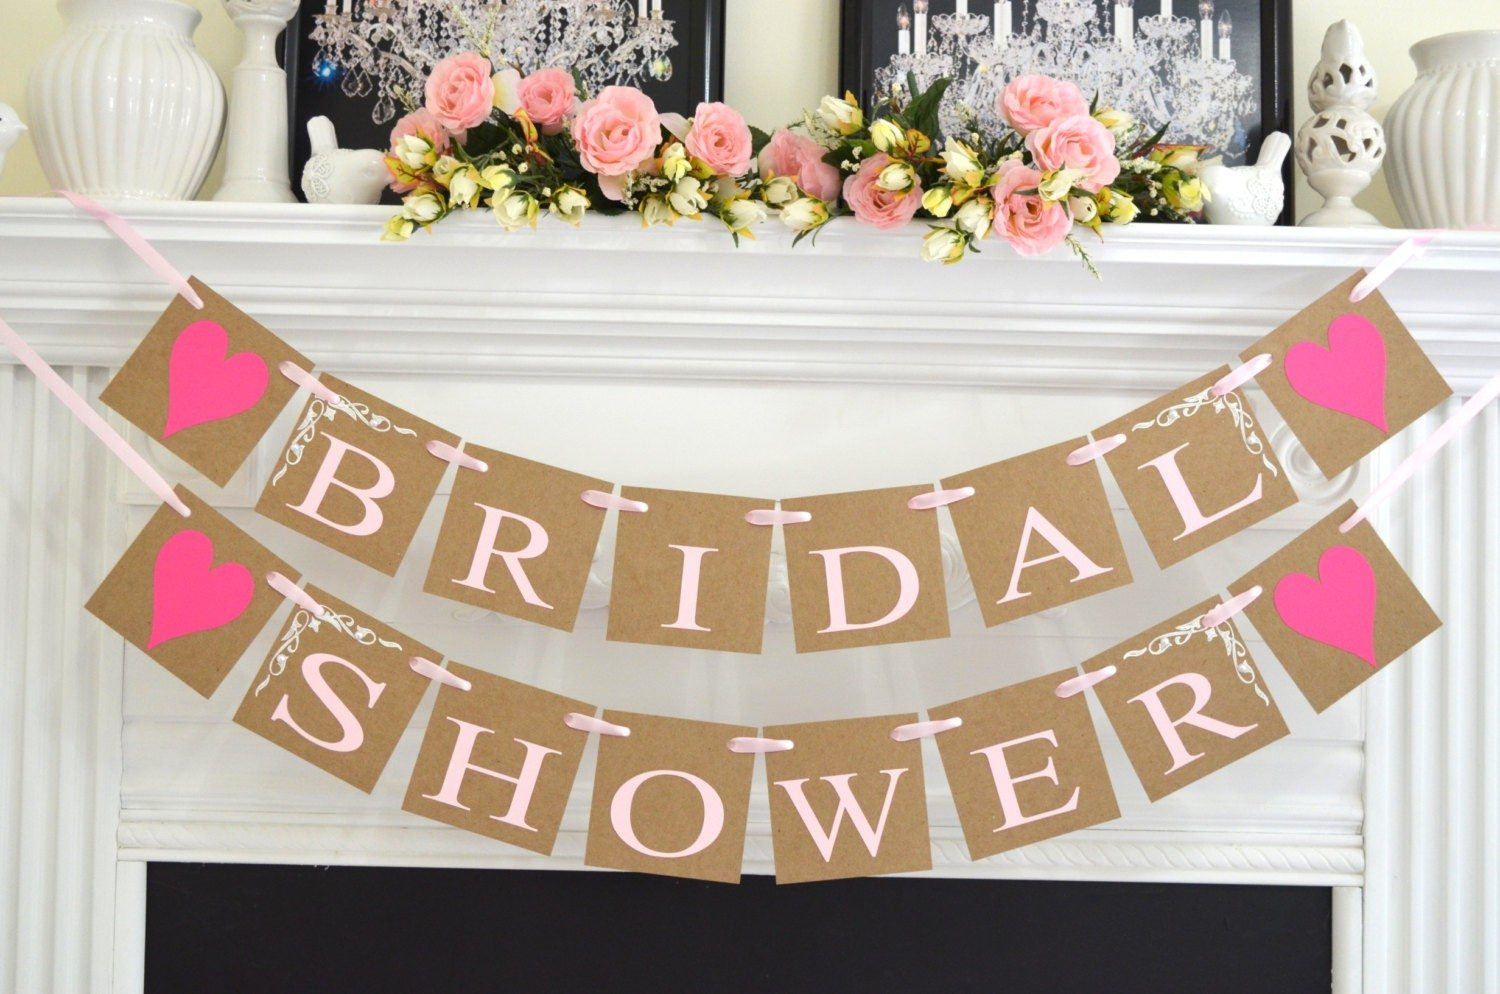 bridalshowerbannerweddingdecorationsshowerdiygarlandsfor2014